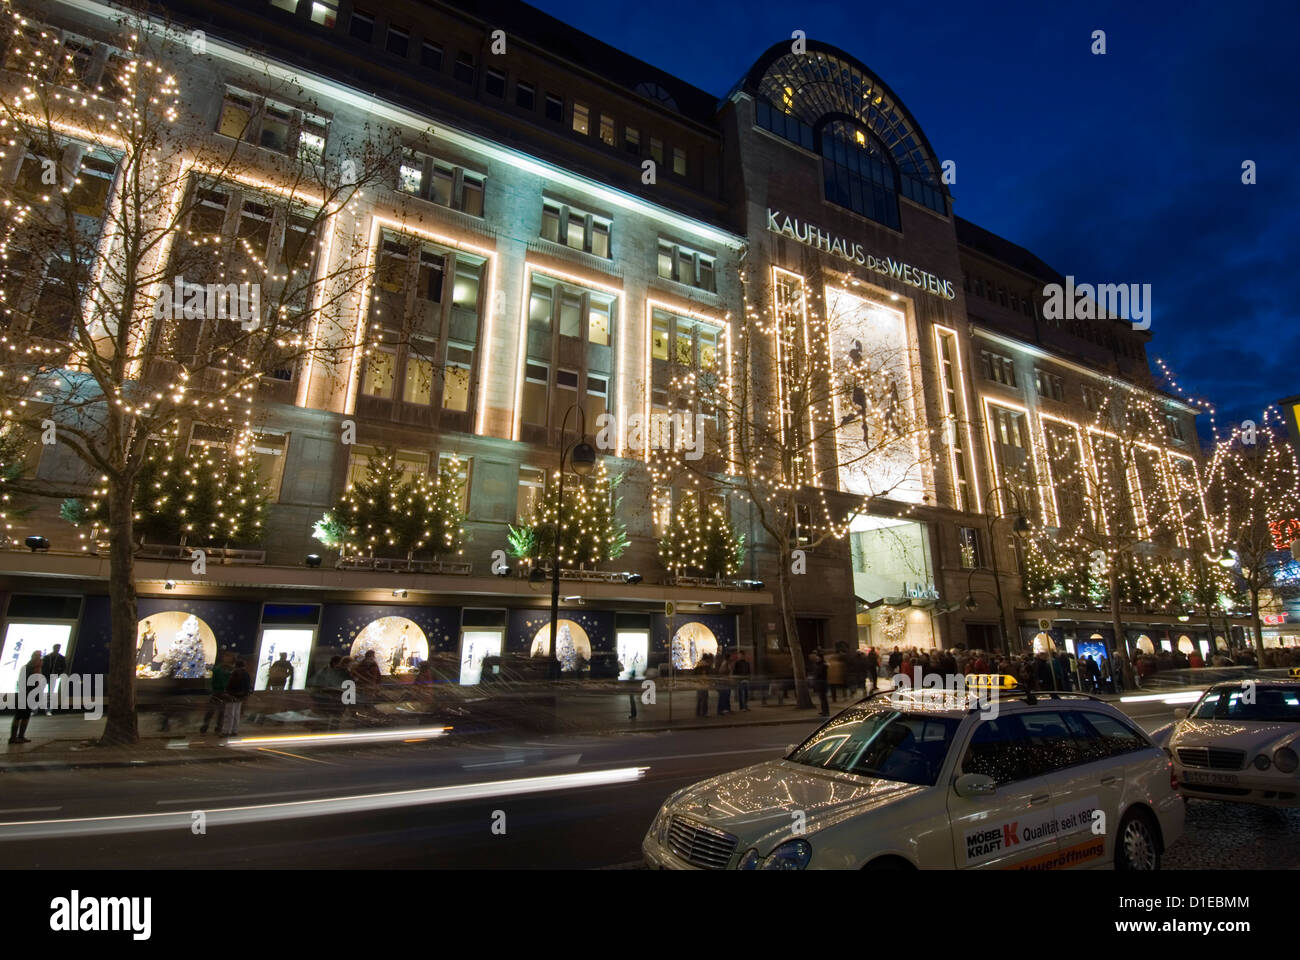 Ka De Ve Department Store at Christmas, Berlin, Germany, Europe - Stock Image